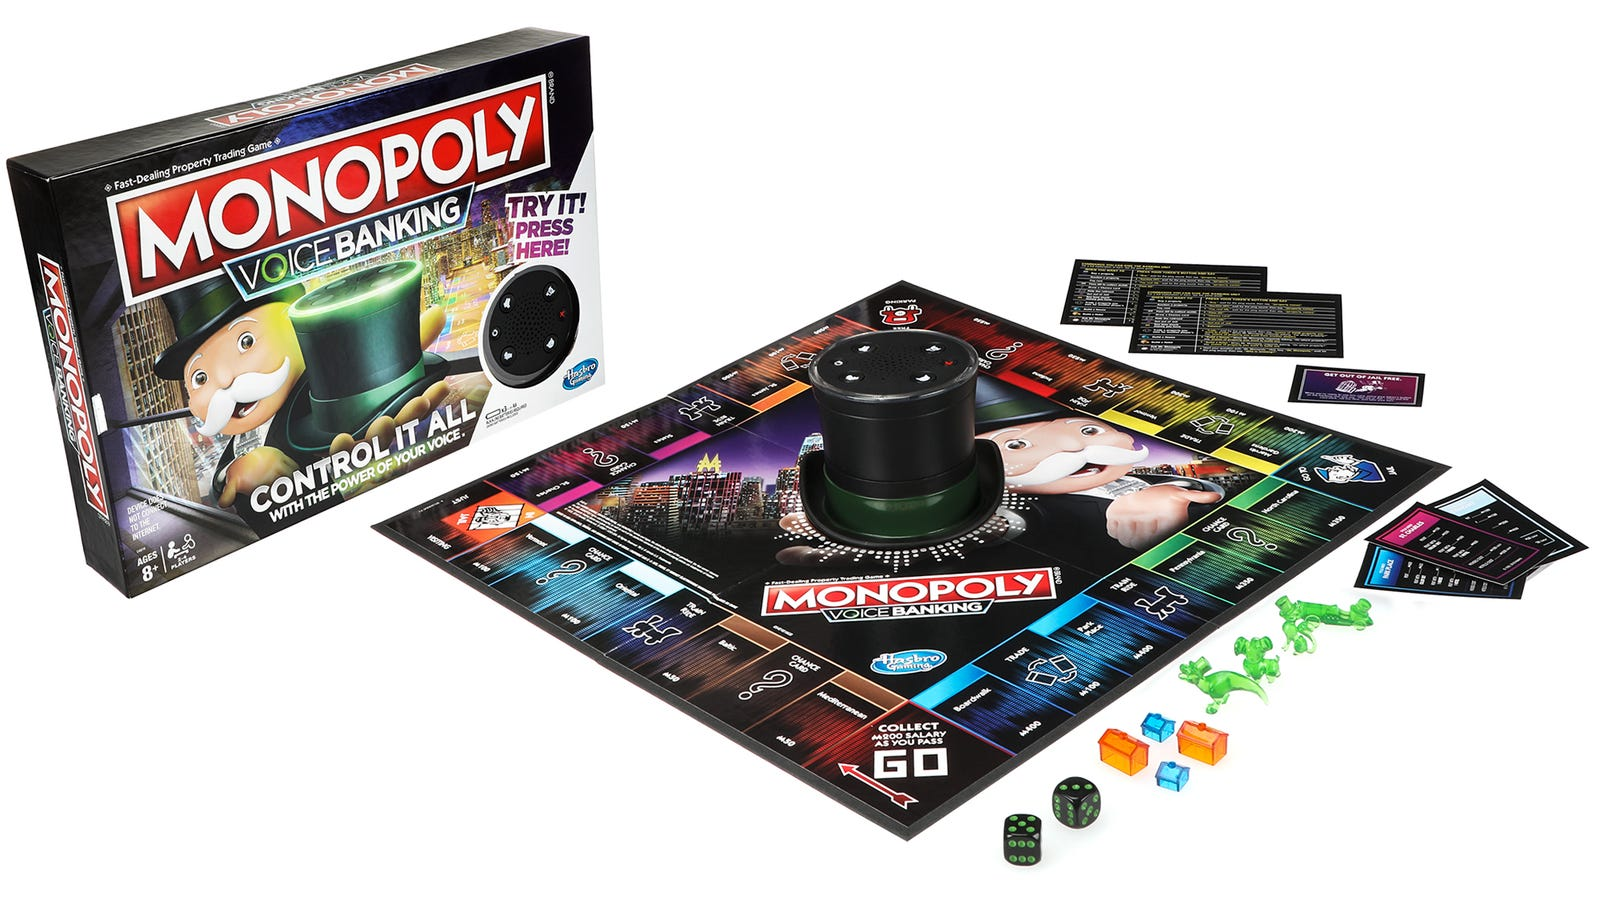 The New Monopoly Has a Voice Controlled AI Banker That Will Never Cheat